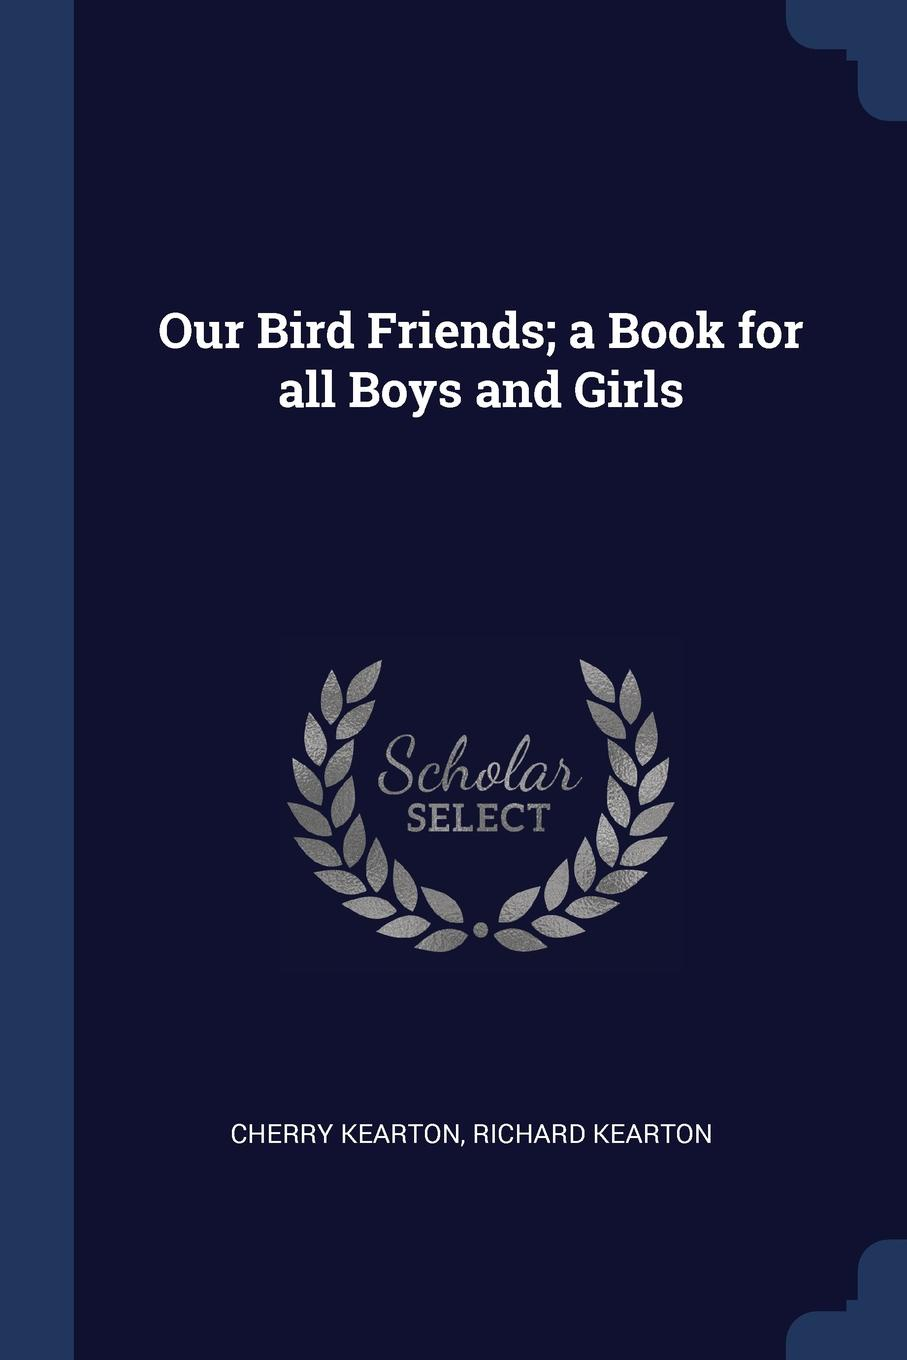 Our Bird Friends; a Book for all Boys and Girls. Cherry Kearton, Richard Kearton